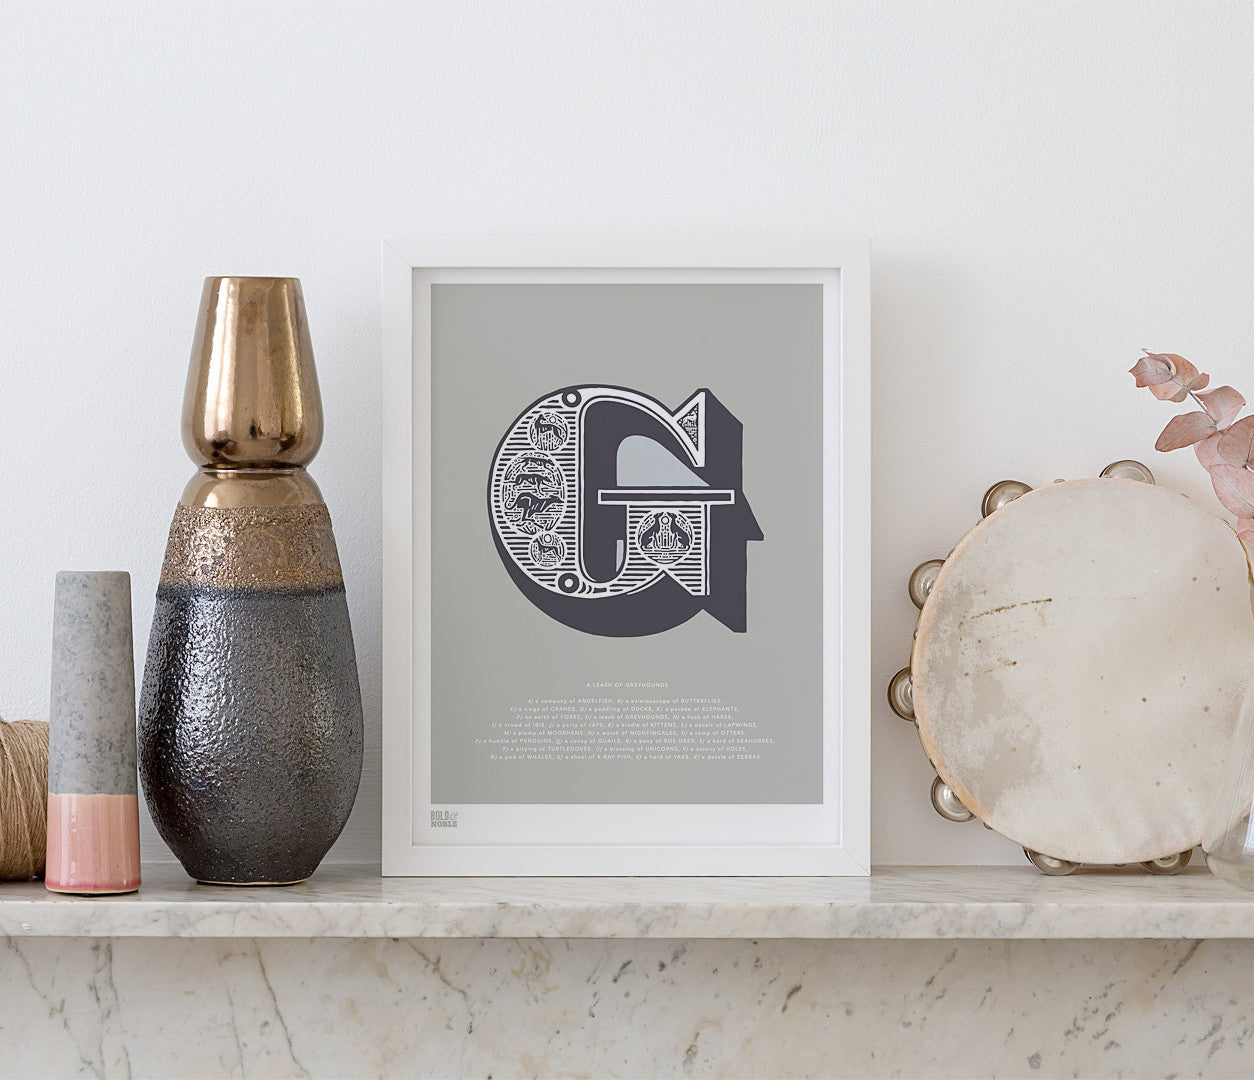 Pictures and Wall Art, Screen Printed Illustrated Letter G design in putty grey